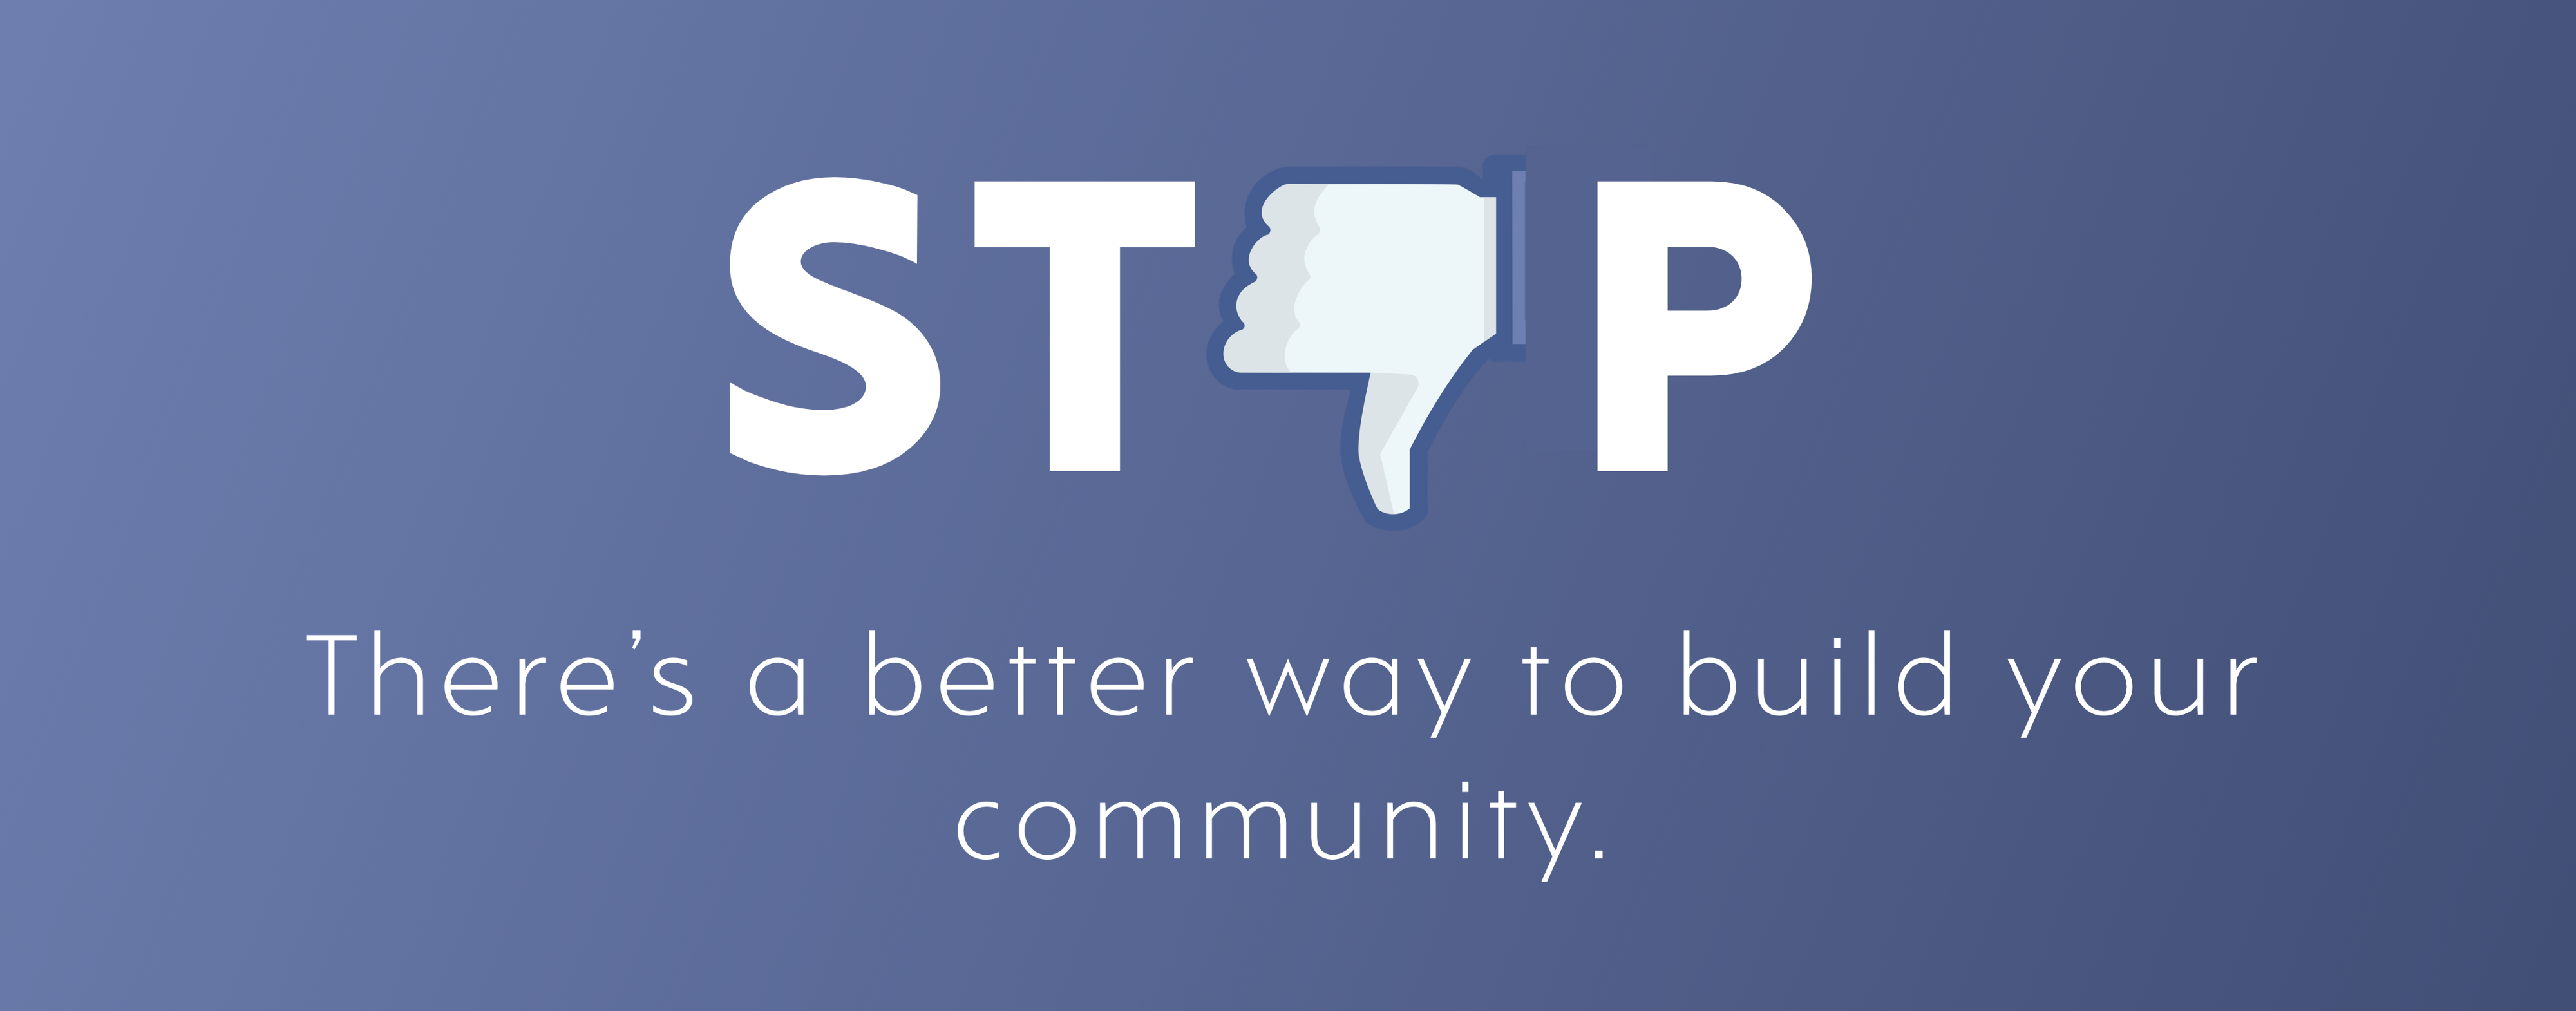 Stop using Facebook for your online communities - LaunchPass